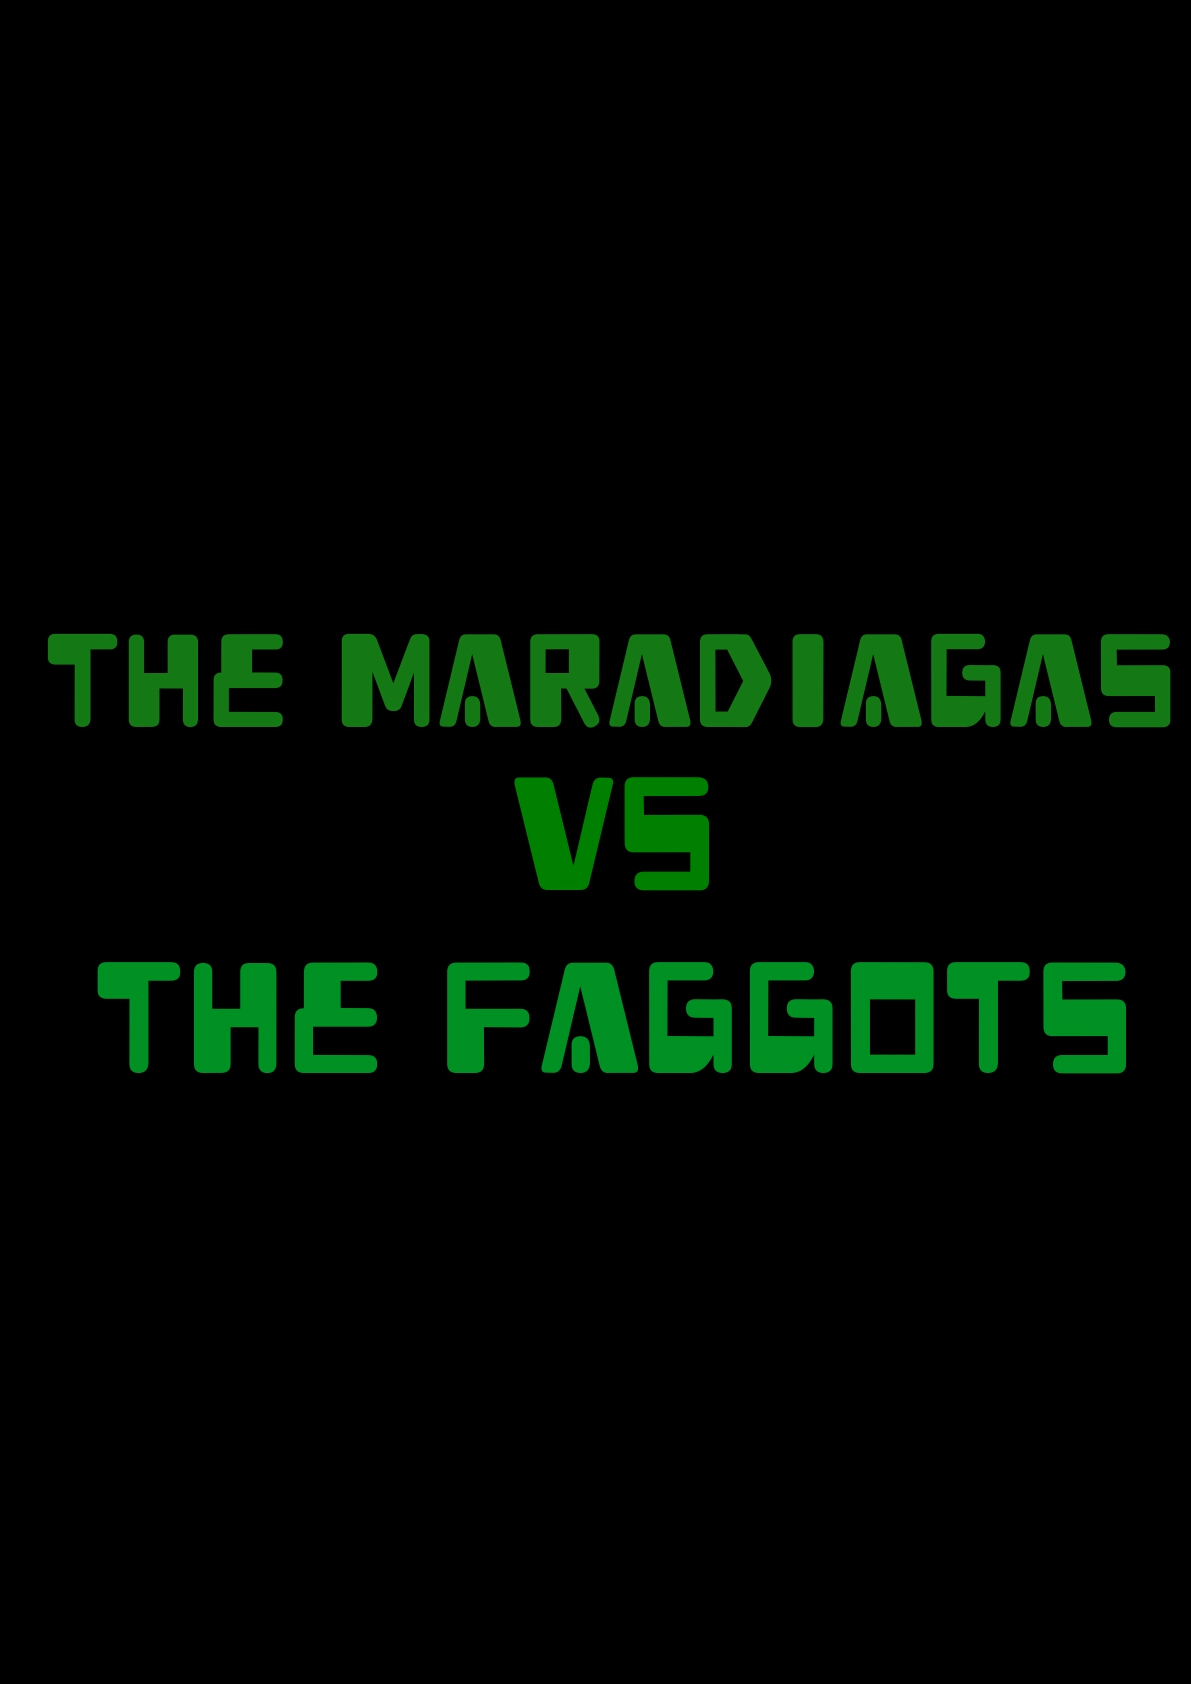 The Maradiagas vs the Faggots